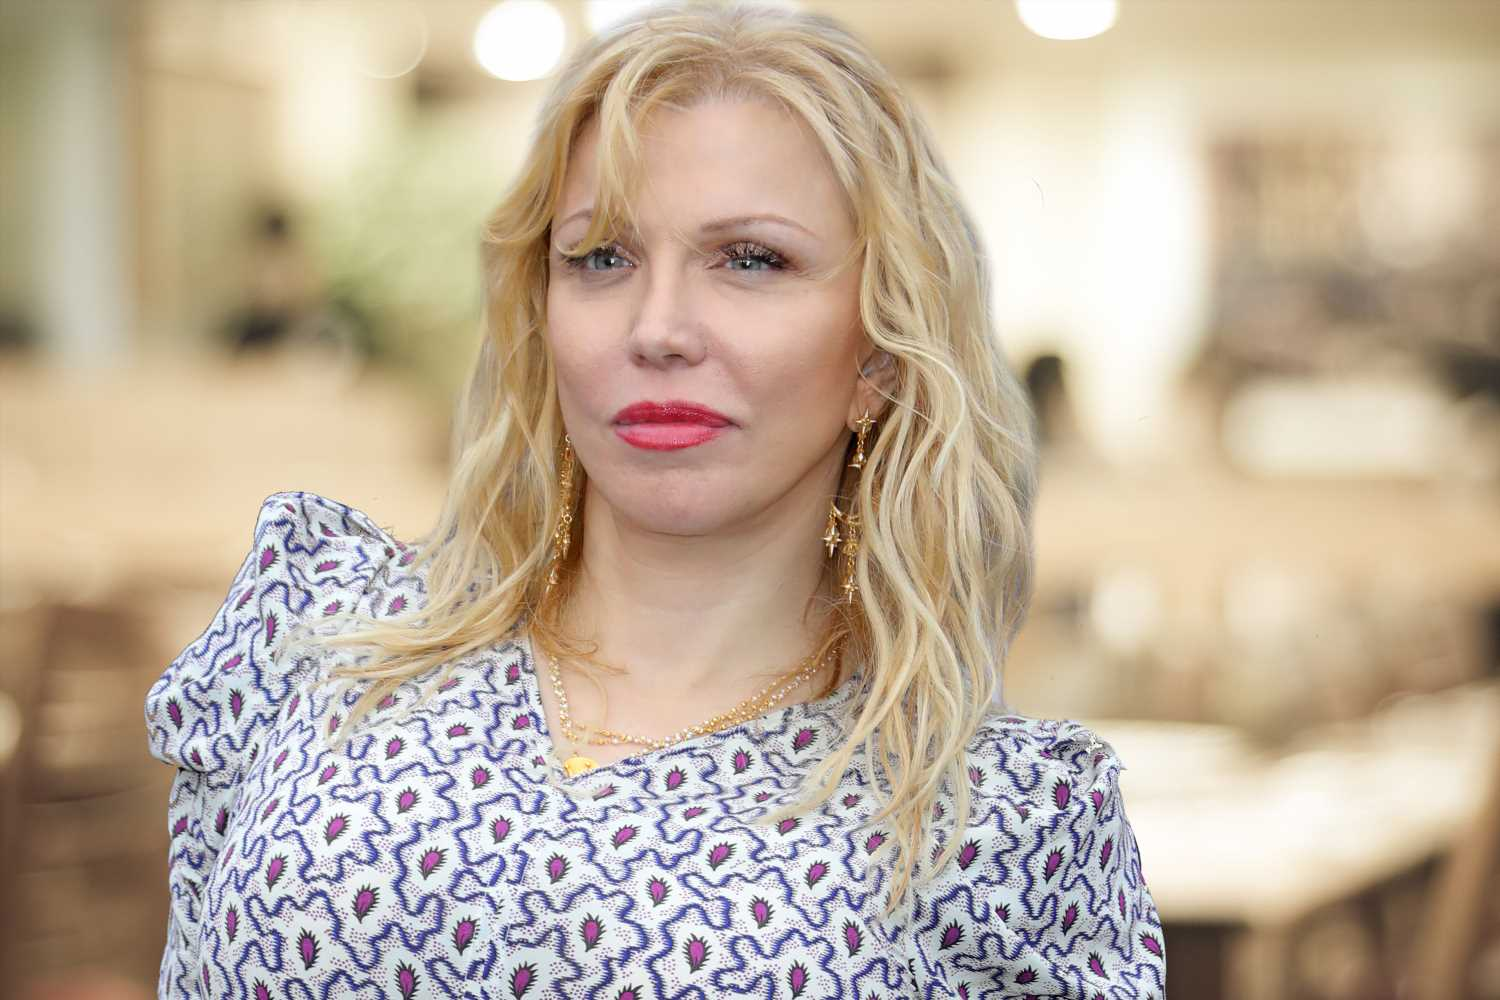 Courtney Love accused of shocking restaurant patrons with her pet etiquette